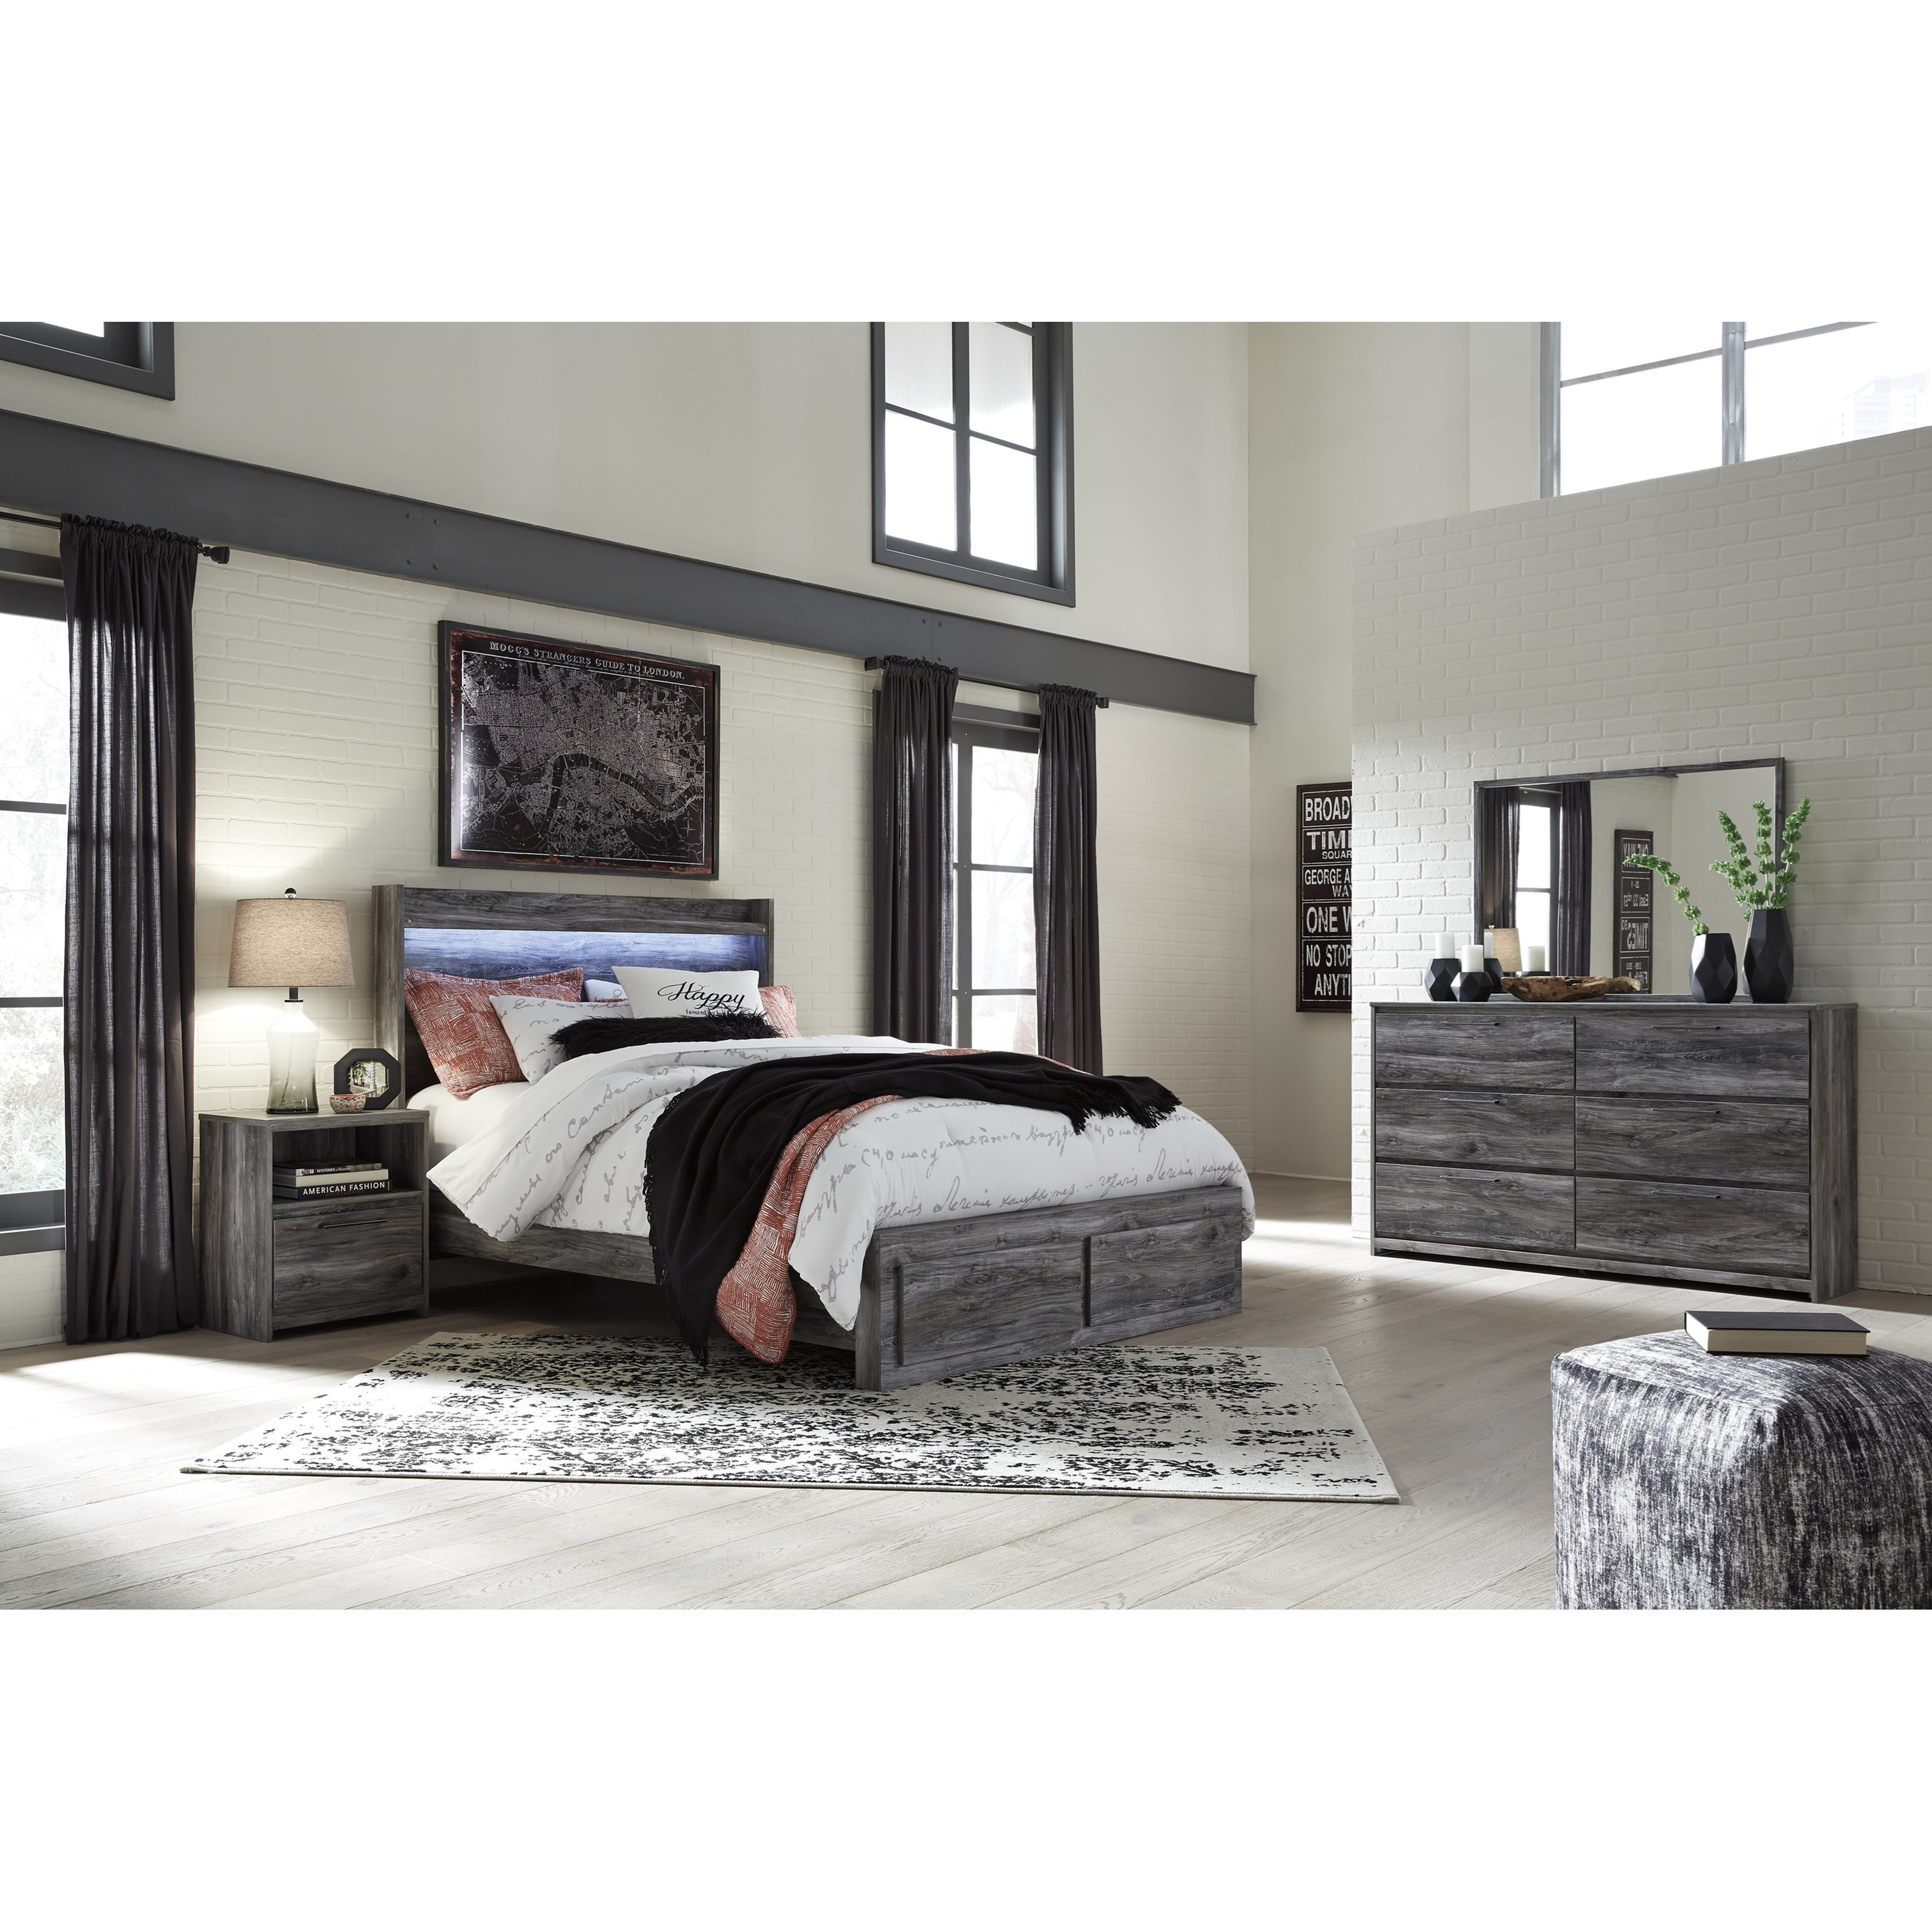 Signature Design By Ashley Baystorm Queen Bedroom Group Value City Furniture Bedroom Groups